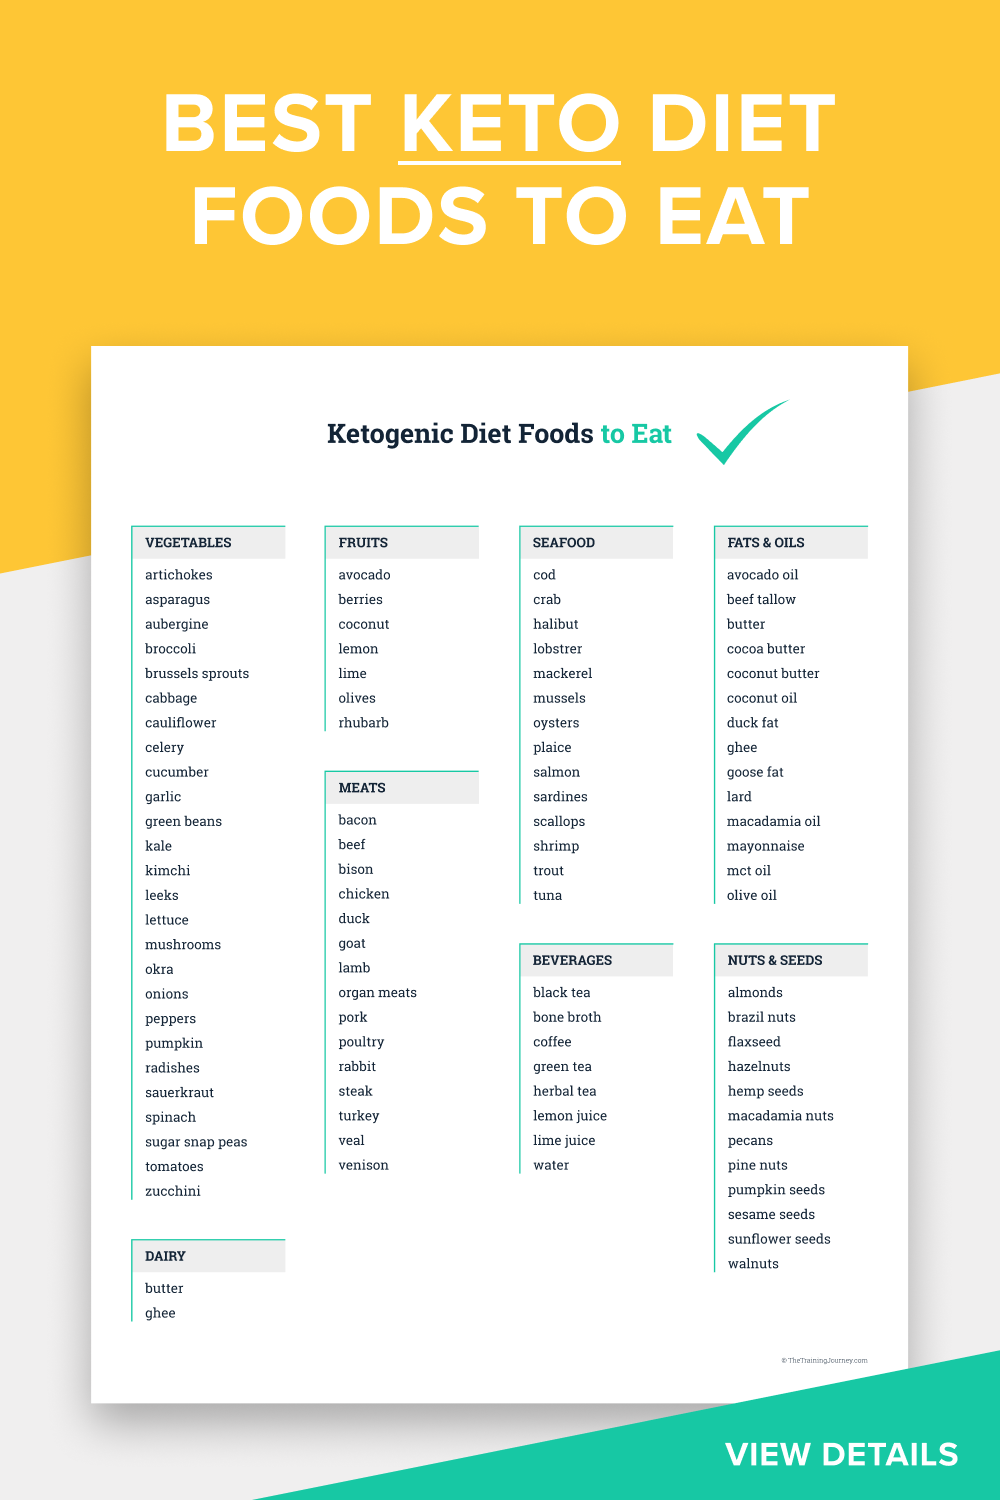 Keto Diet Foods To Eat Printable Keto Friendly Food List Etsy Keto Diet Recipes Ketogenic Diet Meal Plan Ketogenic Diet For Beginners